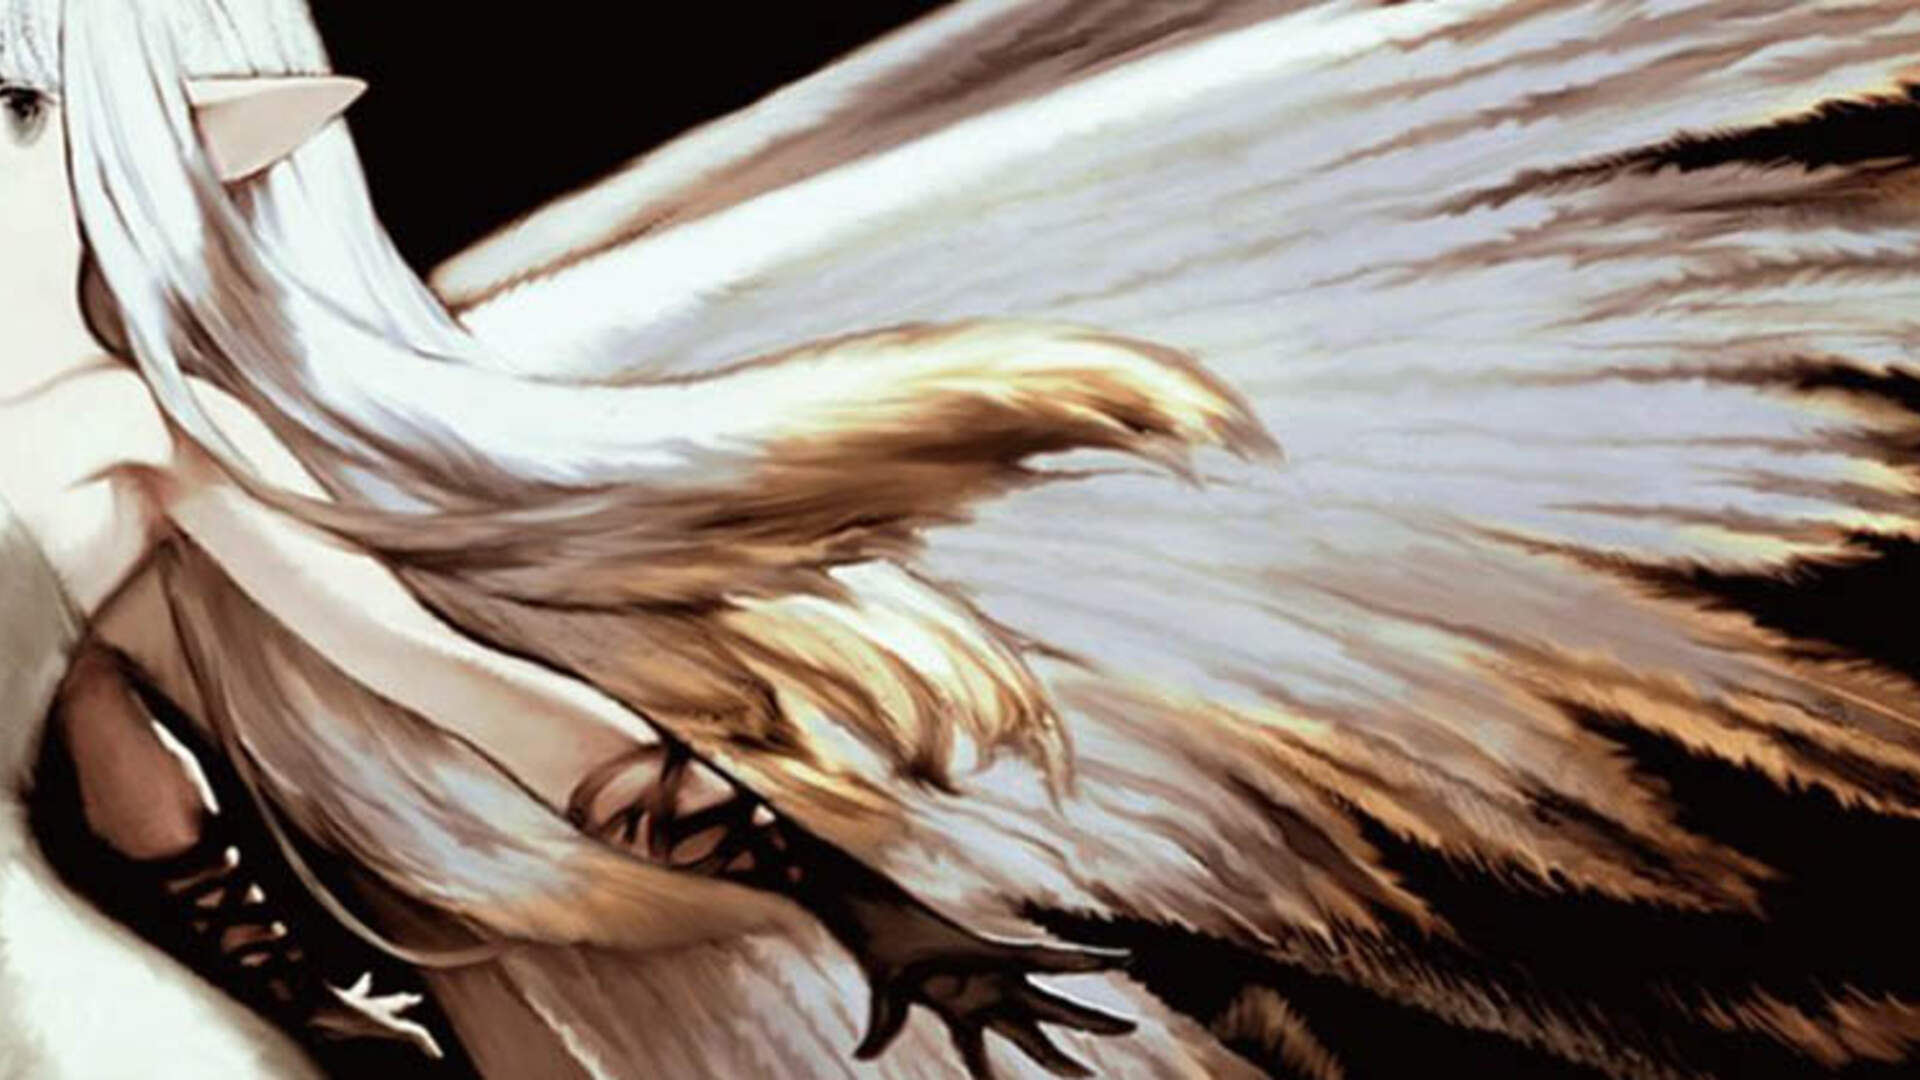 Bravely Default Guide: What are the Best and Most Overpowered Job and Ability Combos?